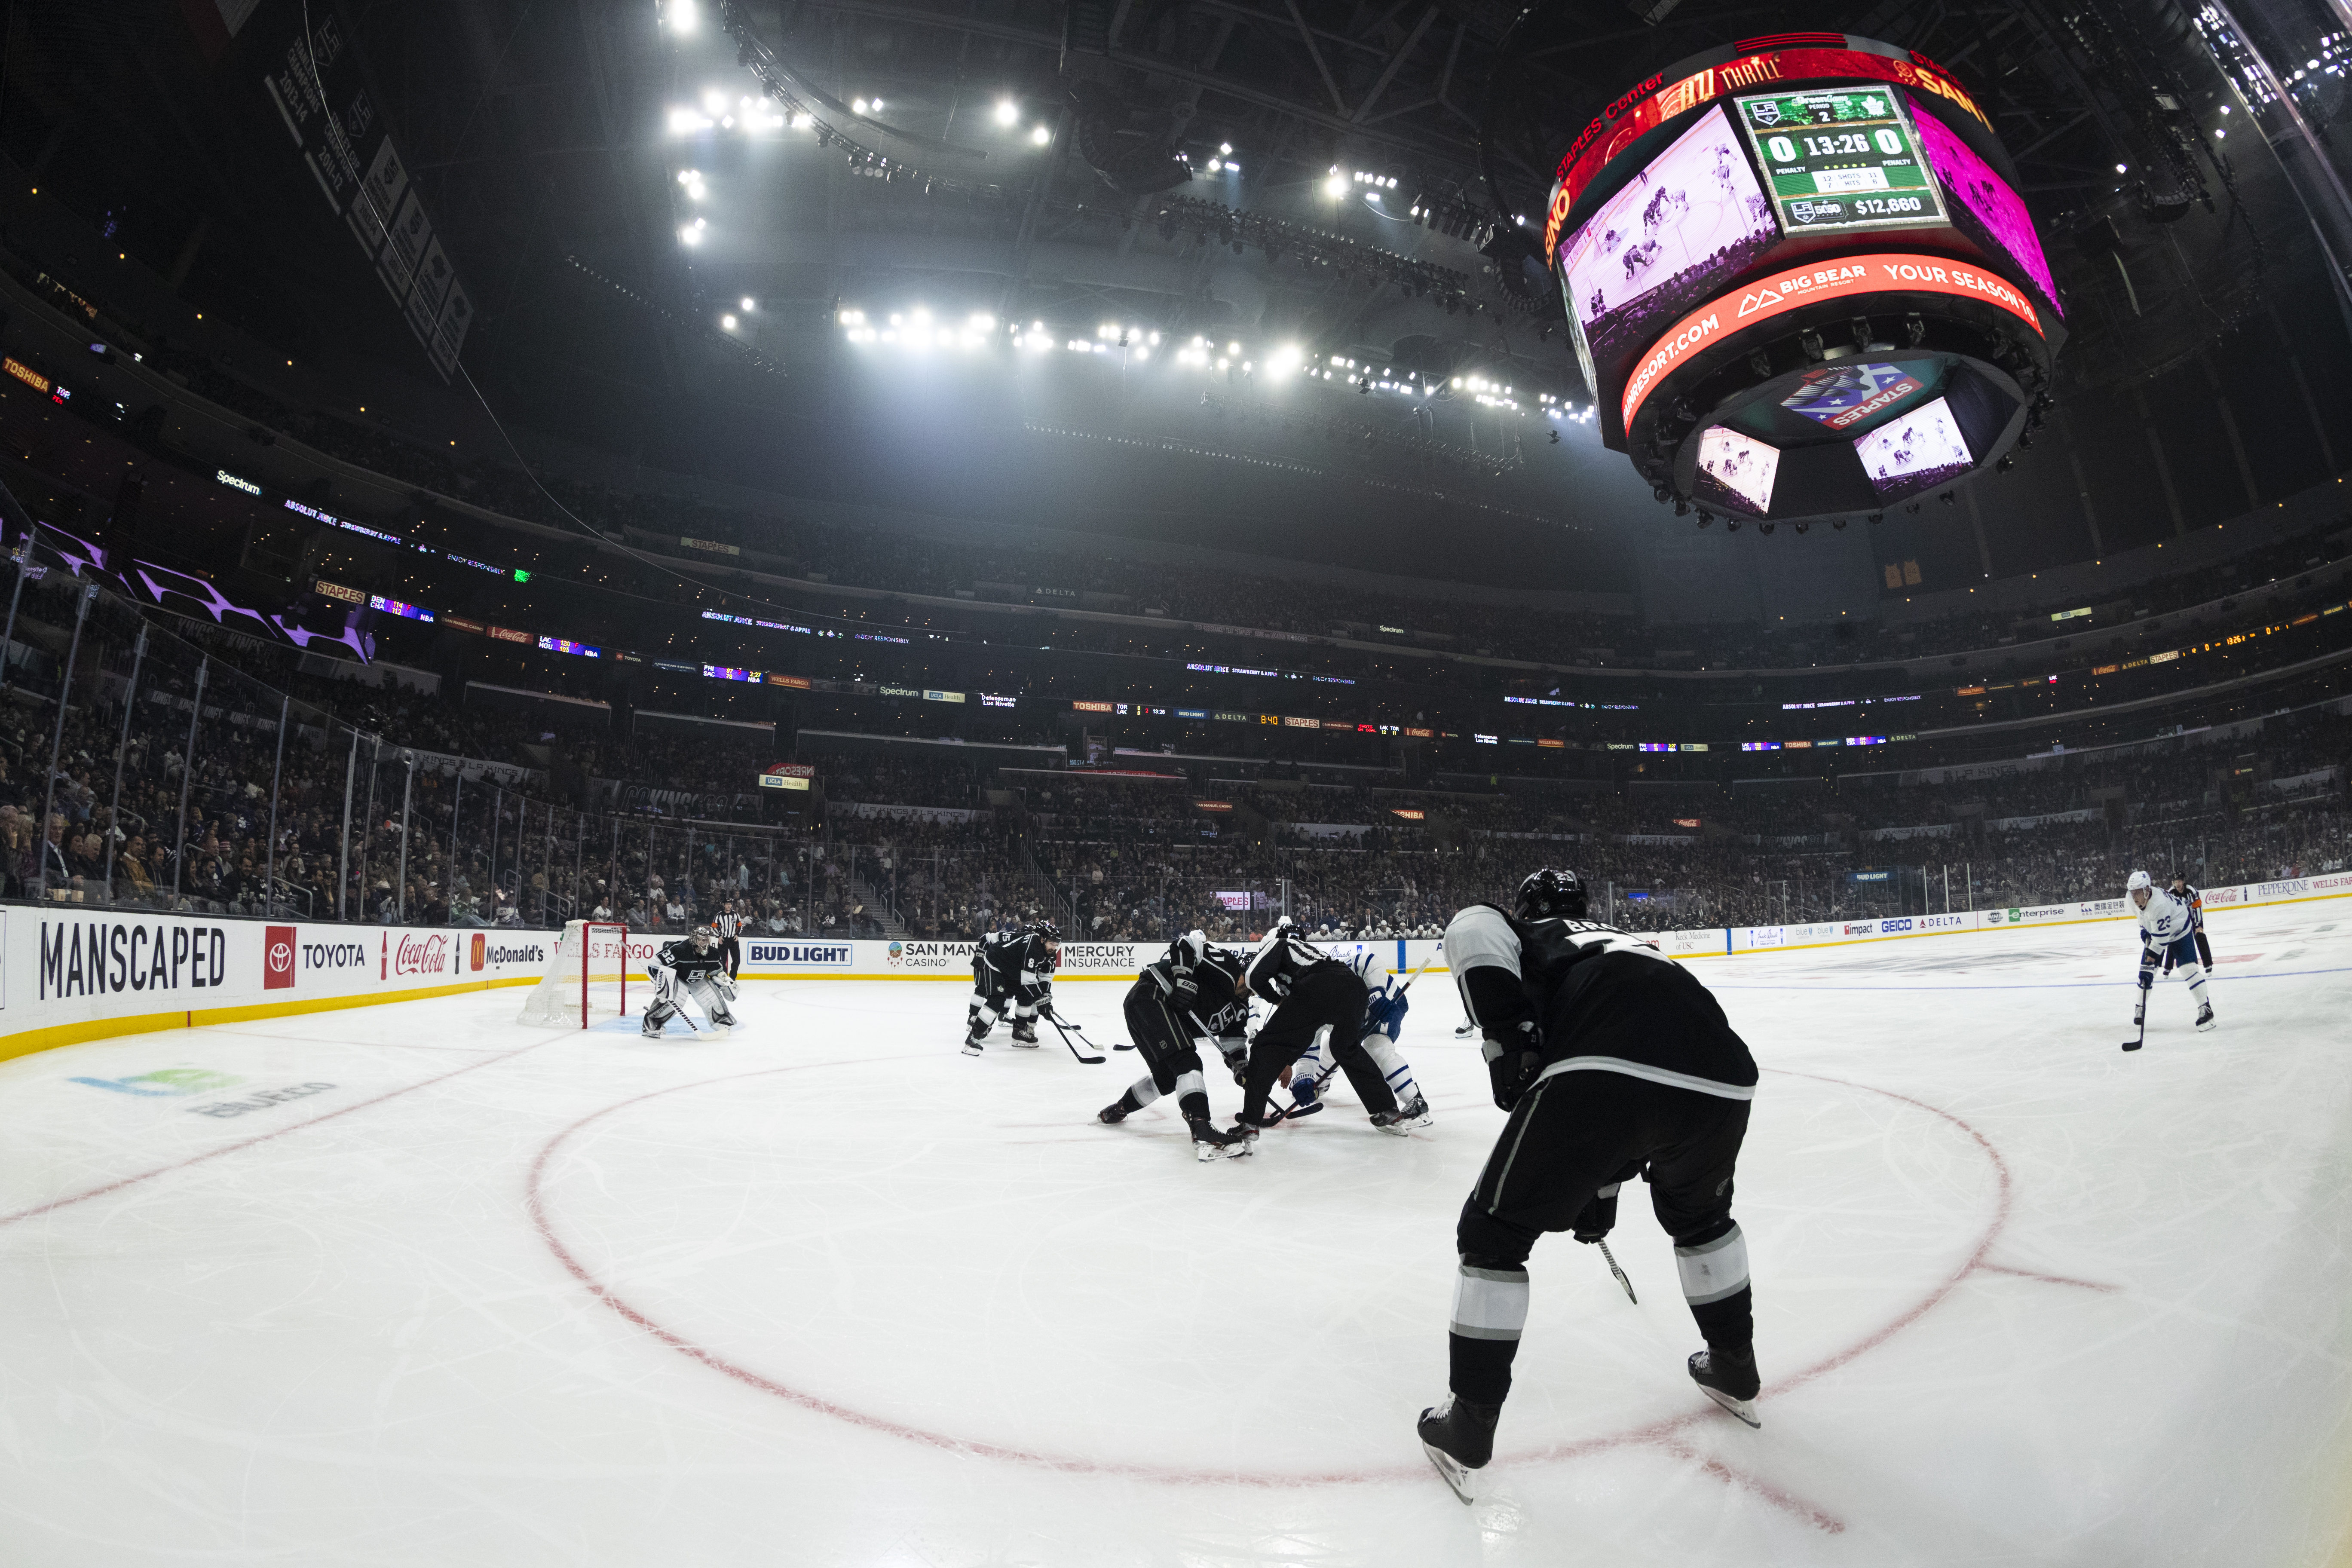 General view of the interior of the Staples Center from ice level during the NHL regular season hockey game against the Toronto Maple Leafs and the Los Angeles Kings on Thursday, March 5, 2020 at Staples Center in Los Angeles, Calif.